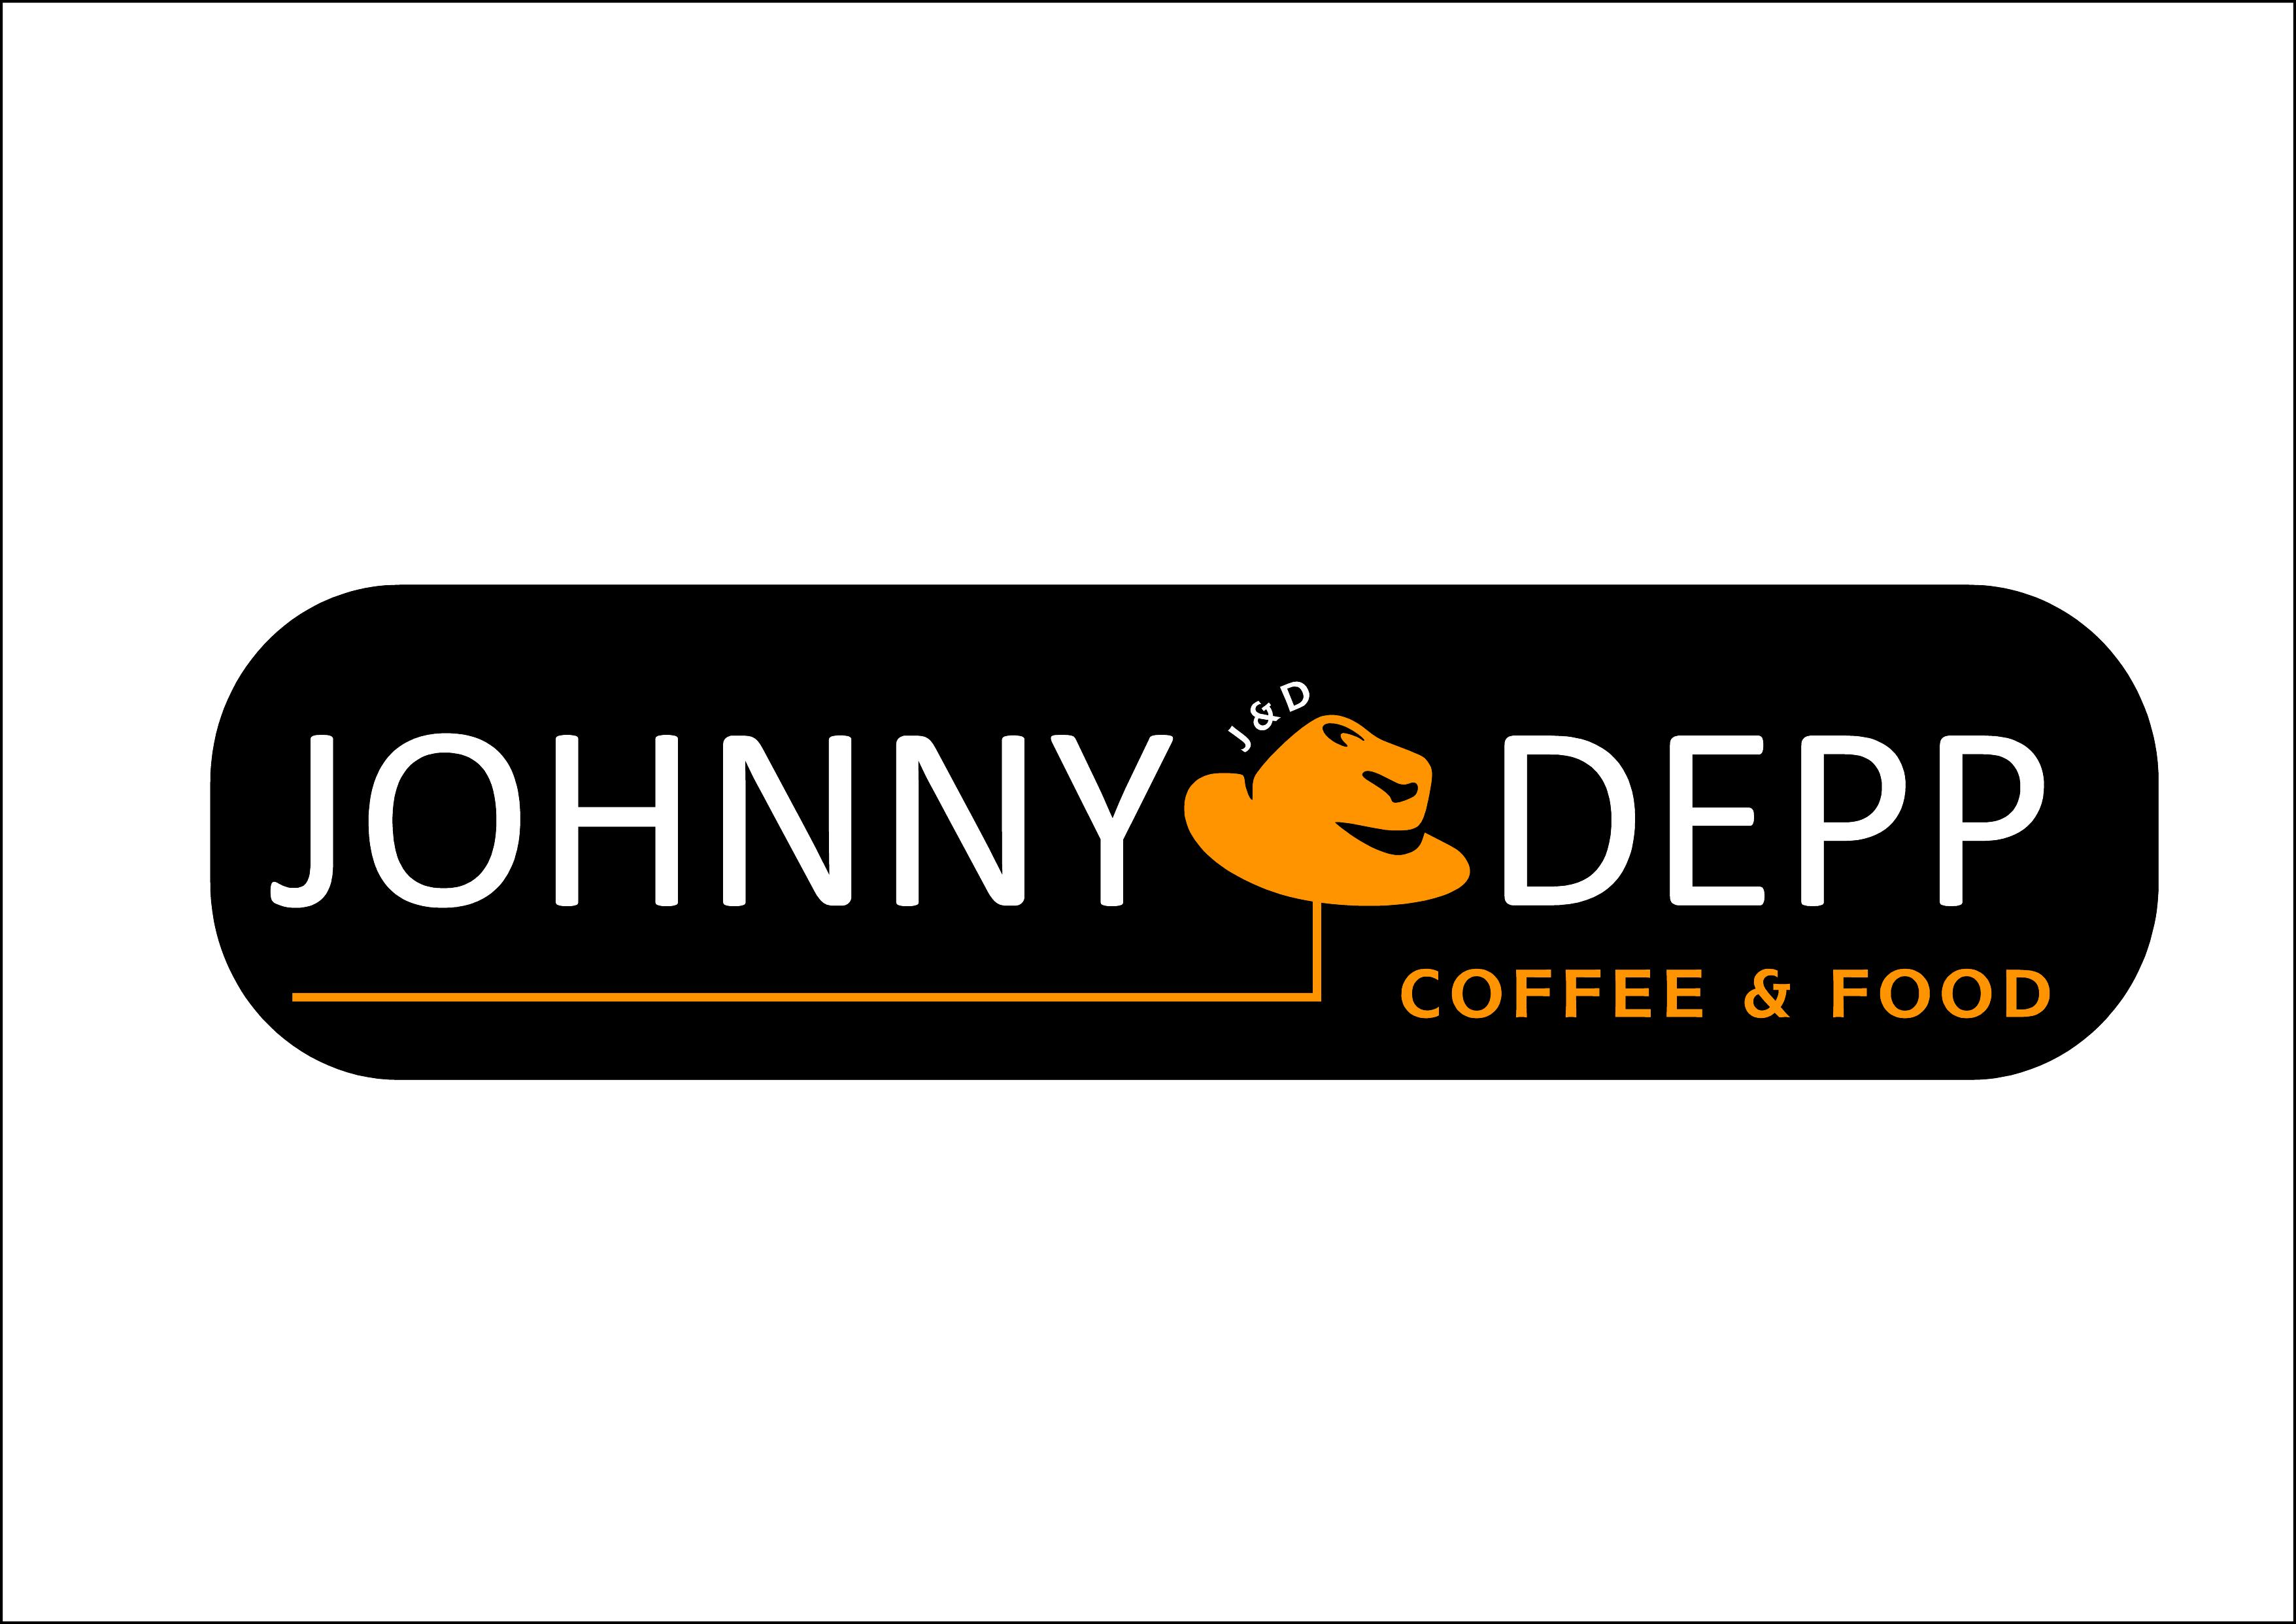 JOHNNY DEPP COFFEE & FOOD